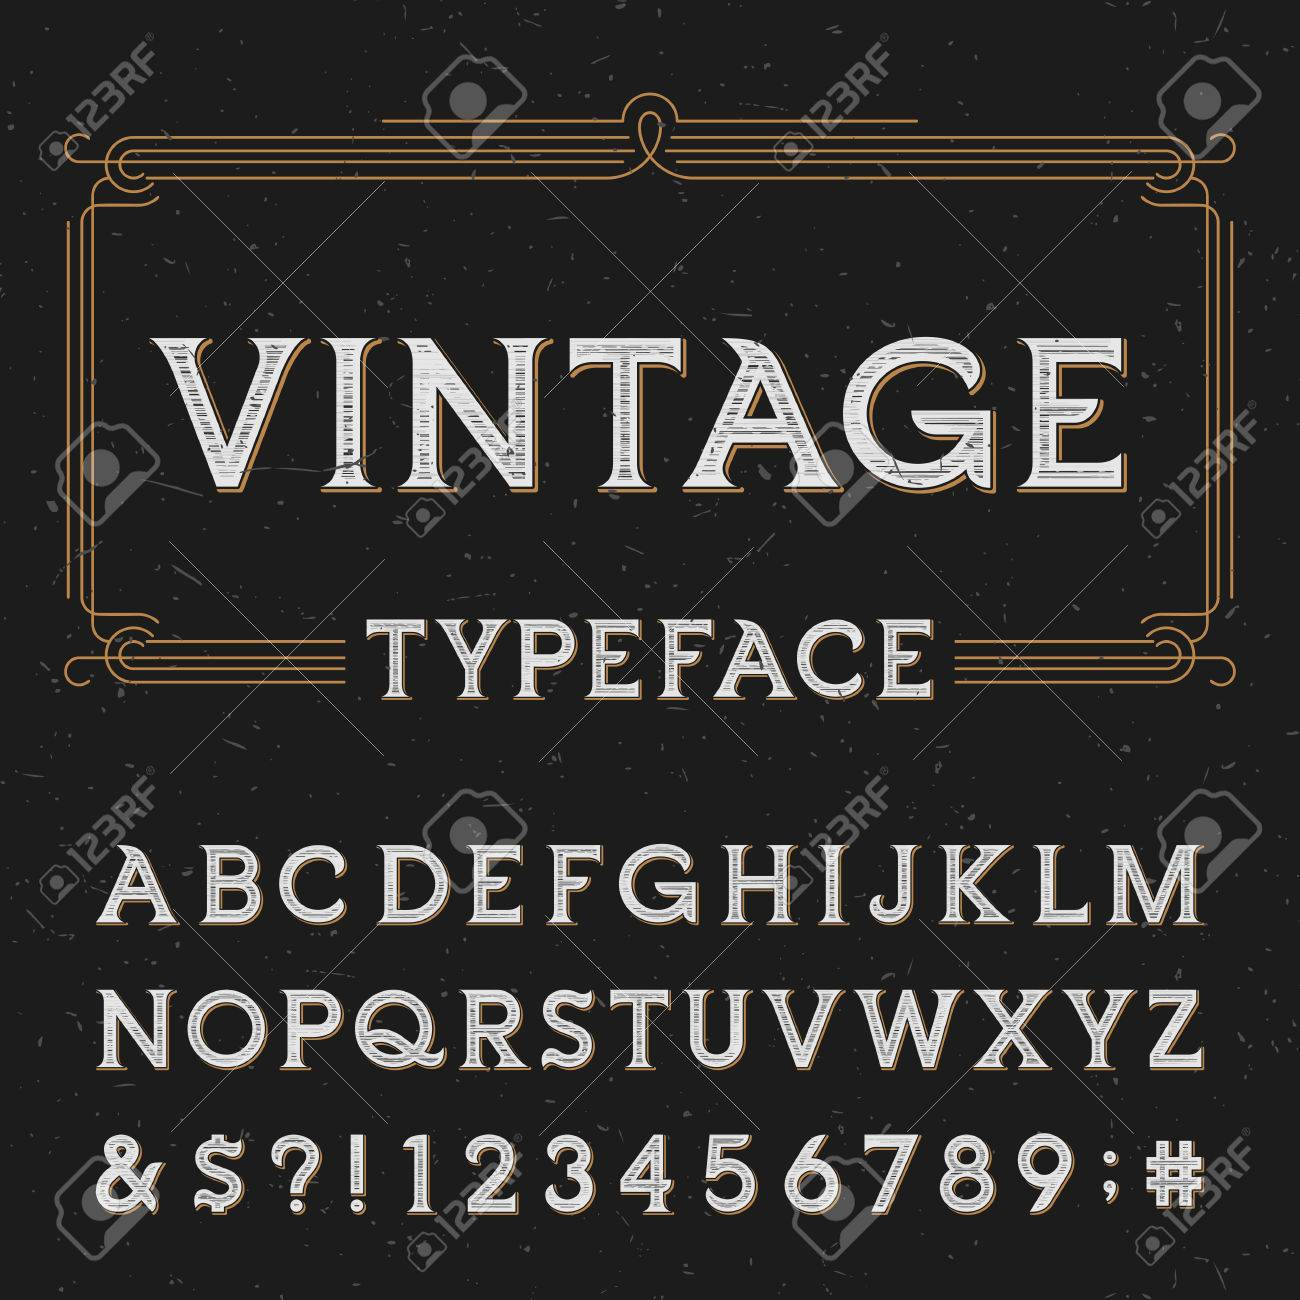 Vintage vector typeface. Type letters, numbers and symbols on a dark distressed background. Alphabet font for labels, headlines, posters etc. - 48351846